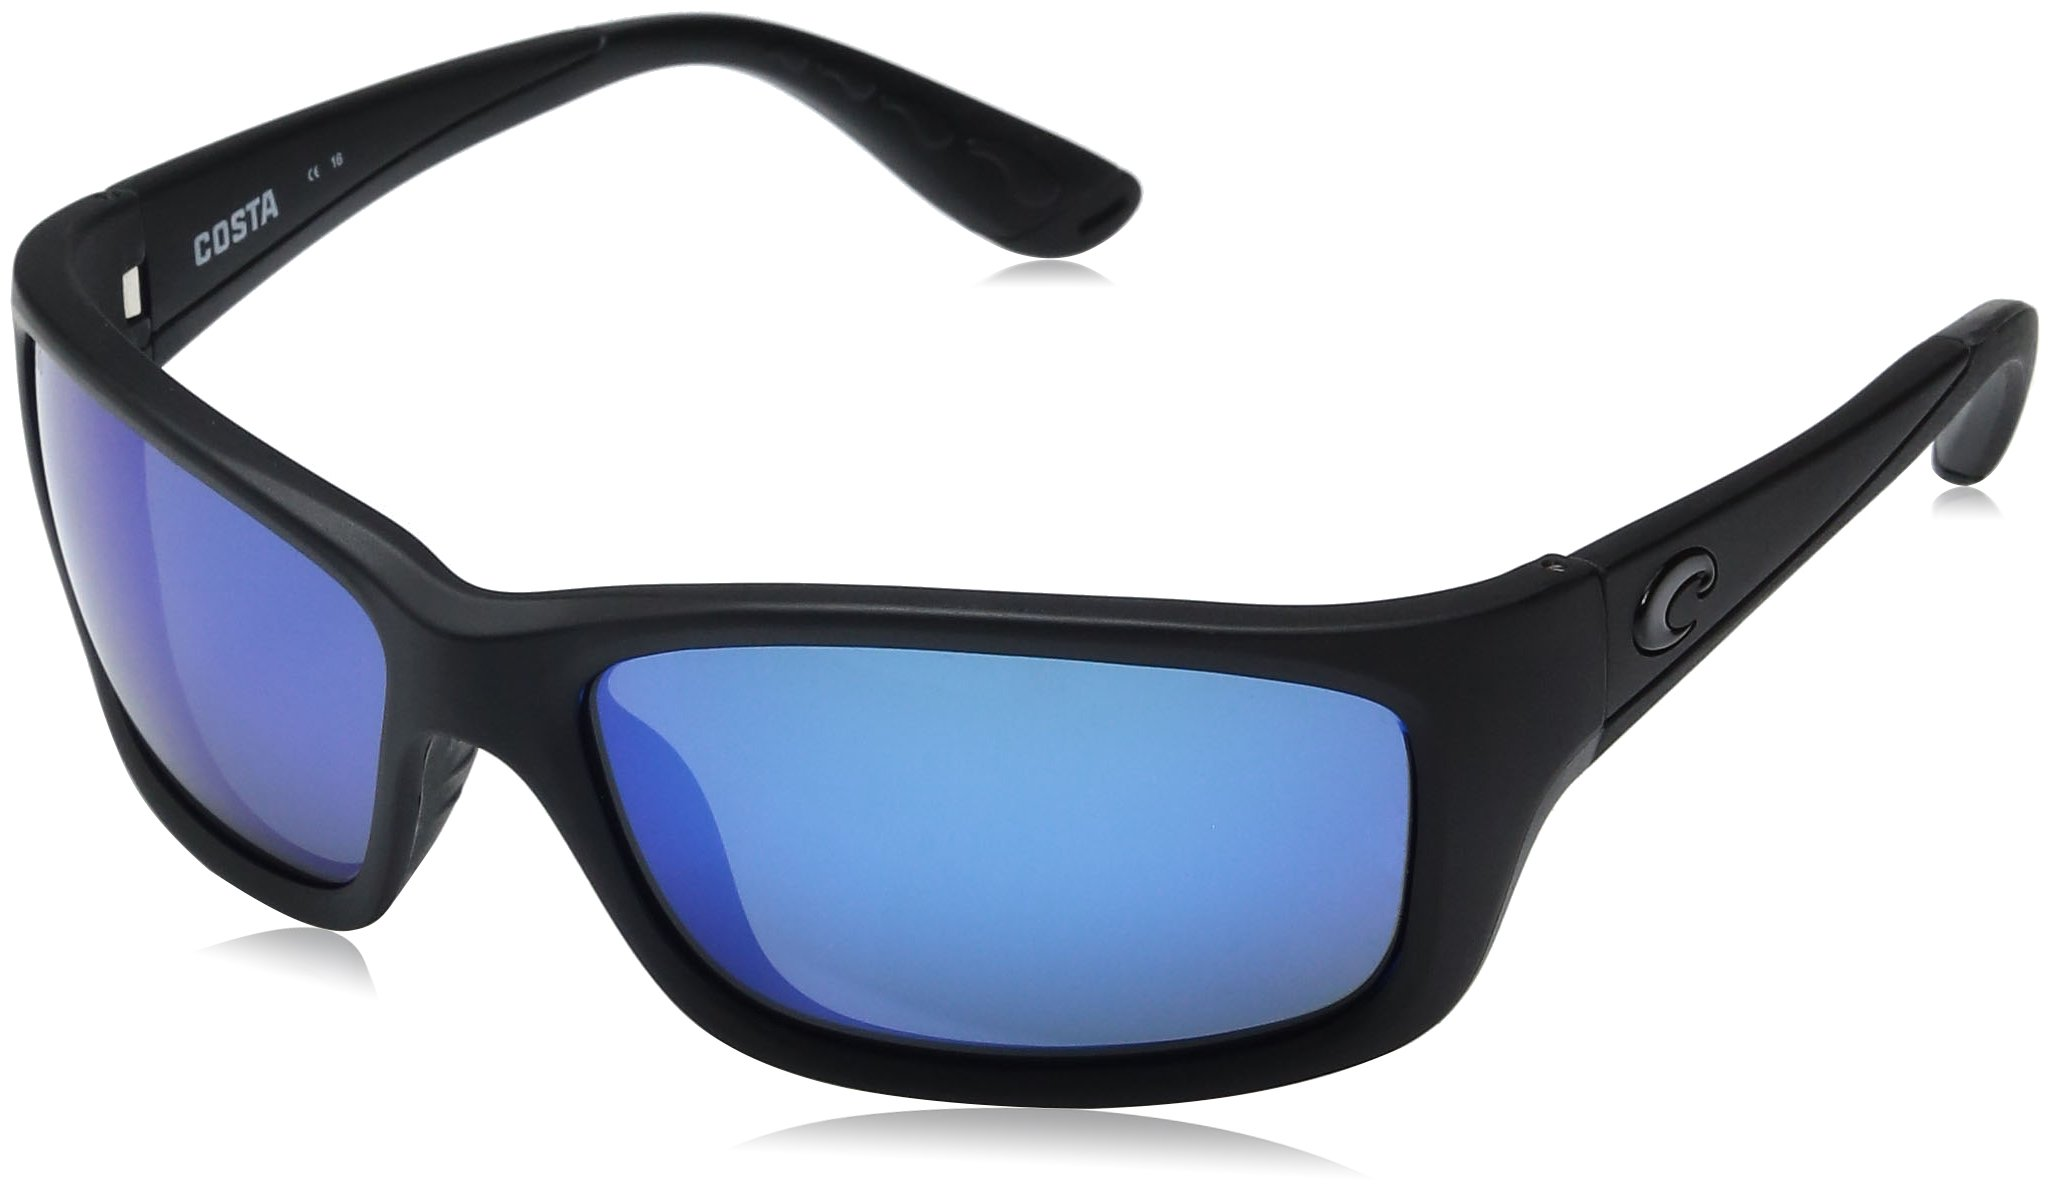 Costa Del Mar Jose Sunglasses, Blackout, Blue Mirror 580 Glass Lens by Costa Del Mar